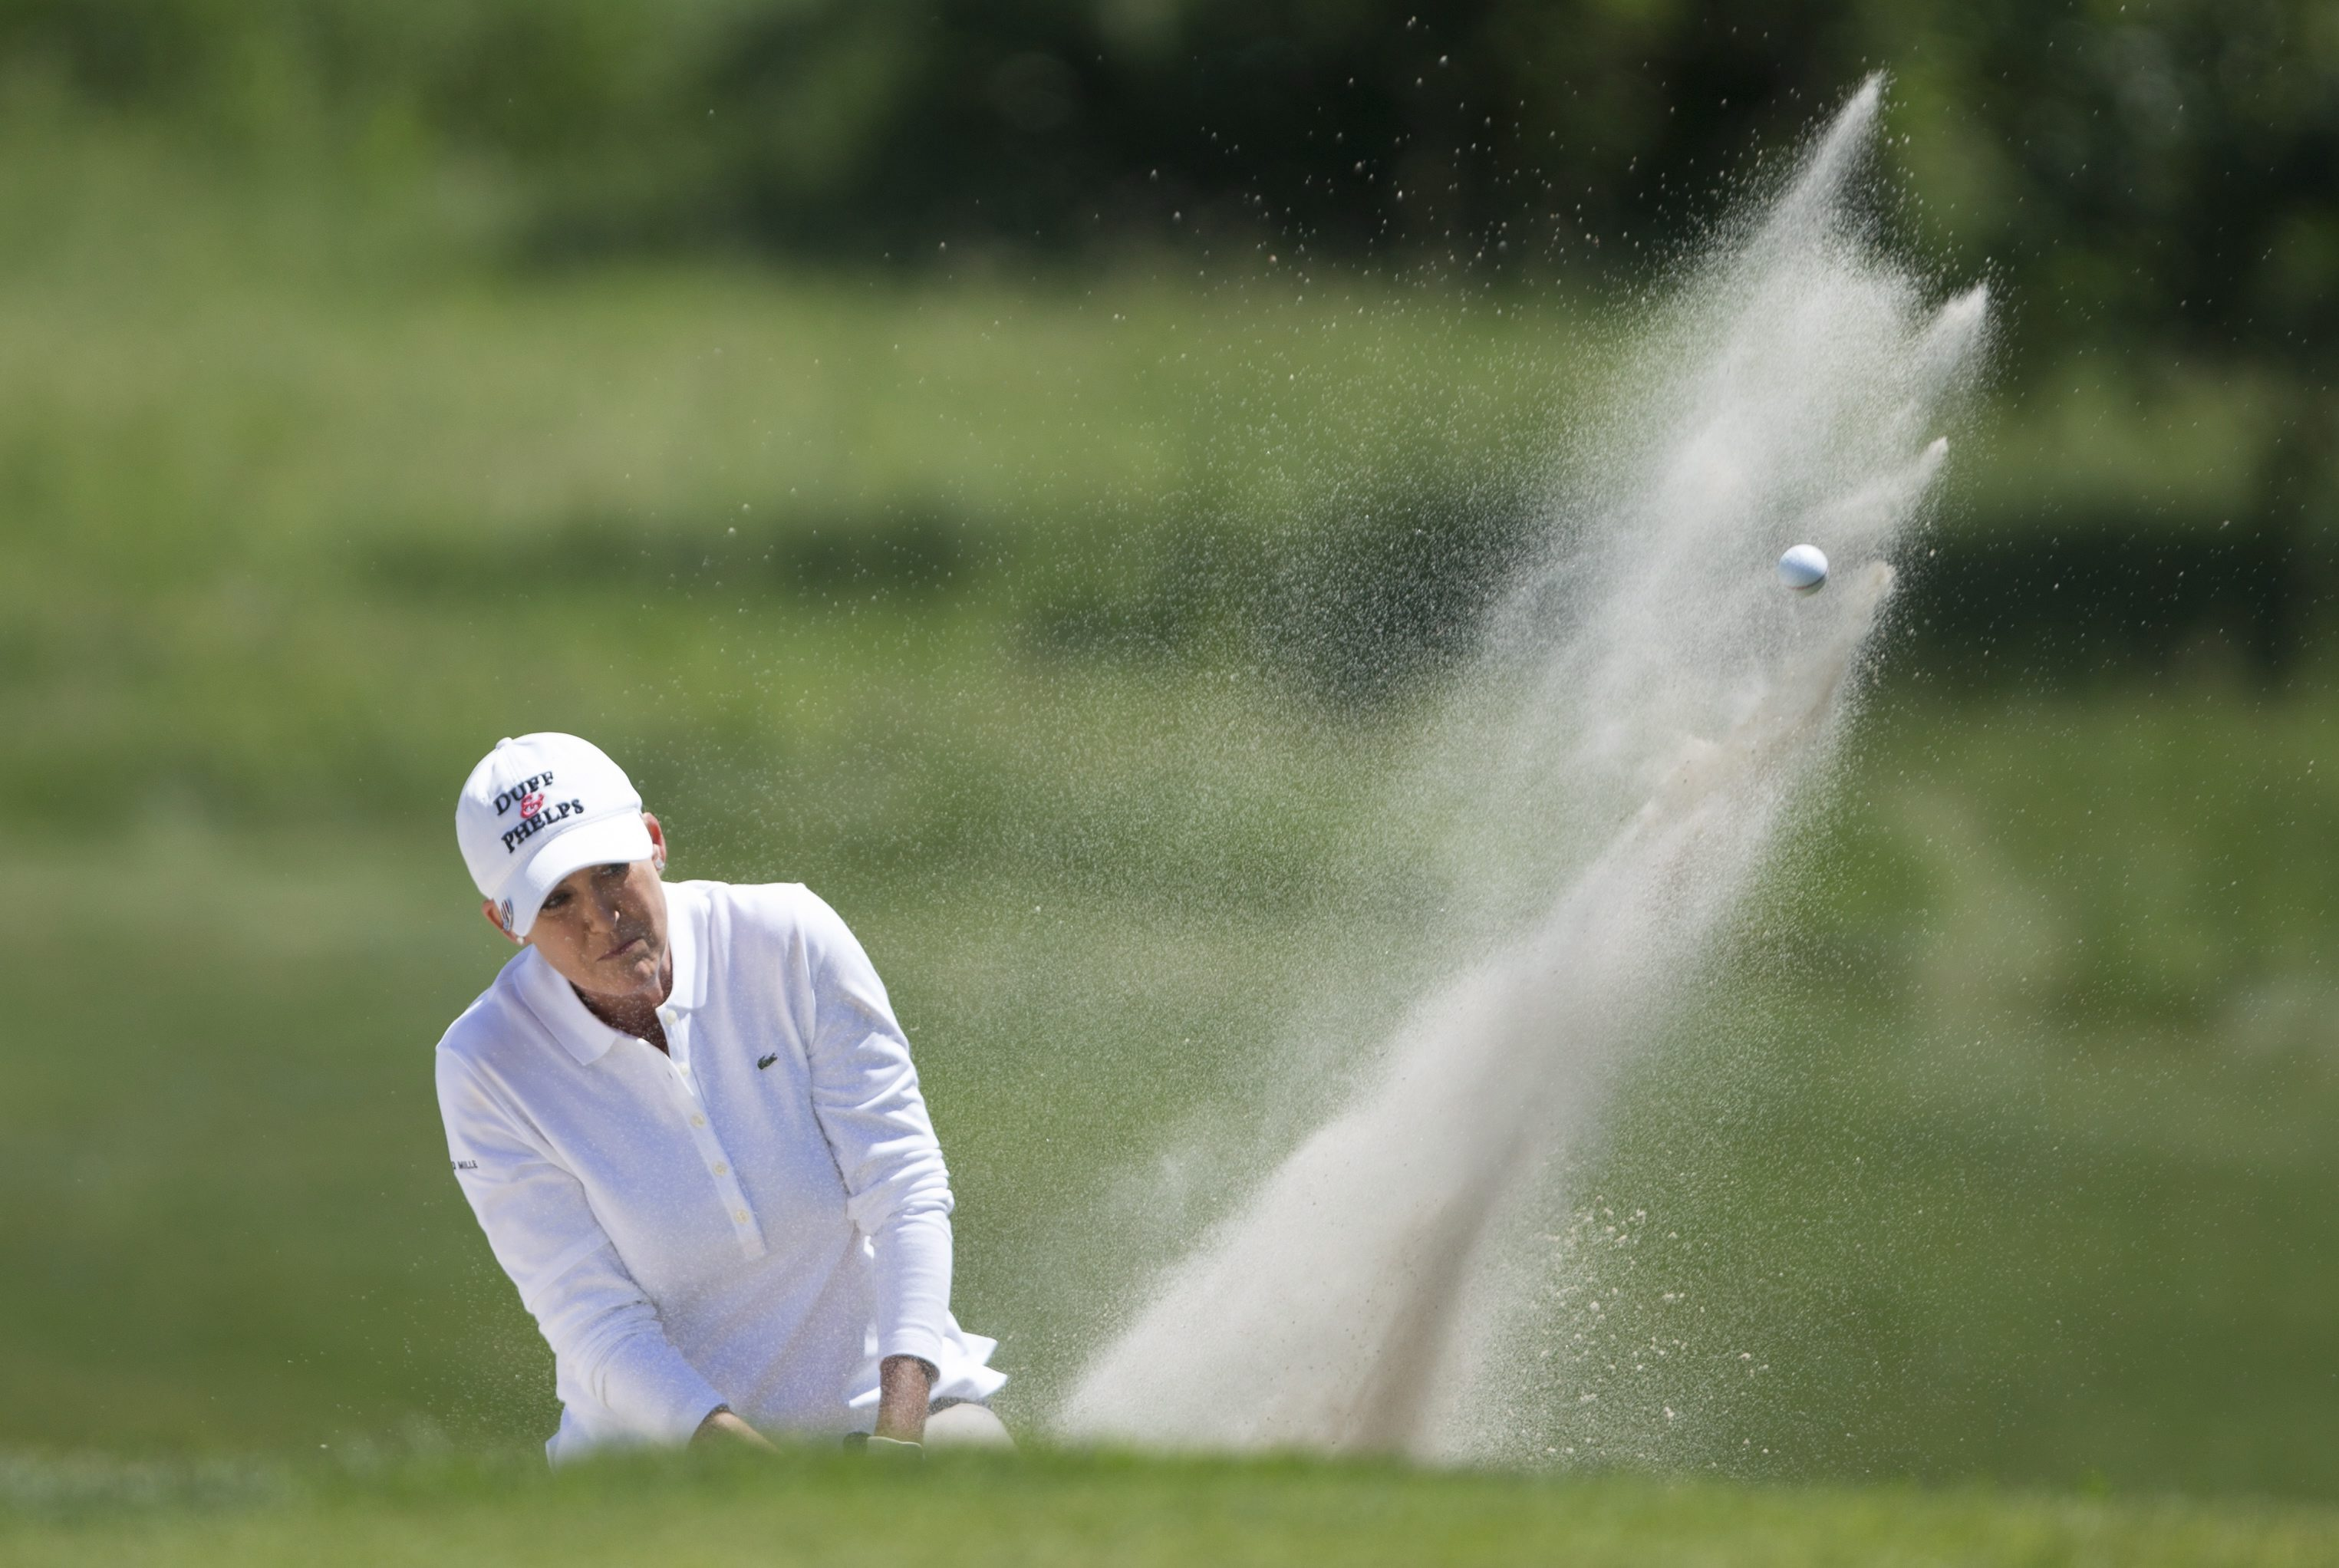 Cristie Kerr, of the United States blasts out of the sand on the third hole during the third round of the 2015 Manulife LPGA Classic, Saturday, June 6, 2015 in Cambridge, Ontario. (Peter Power/The Canadian Press via AP) MANDATORY